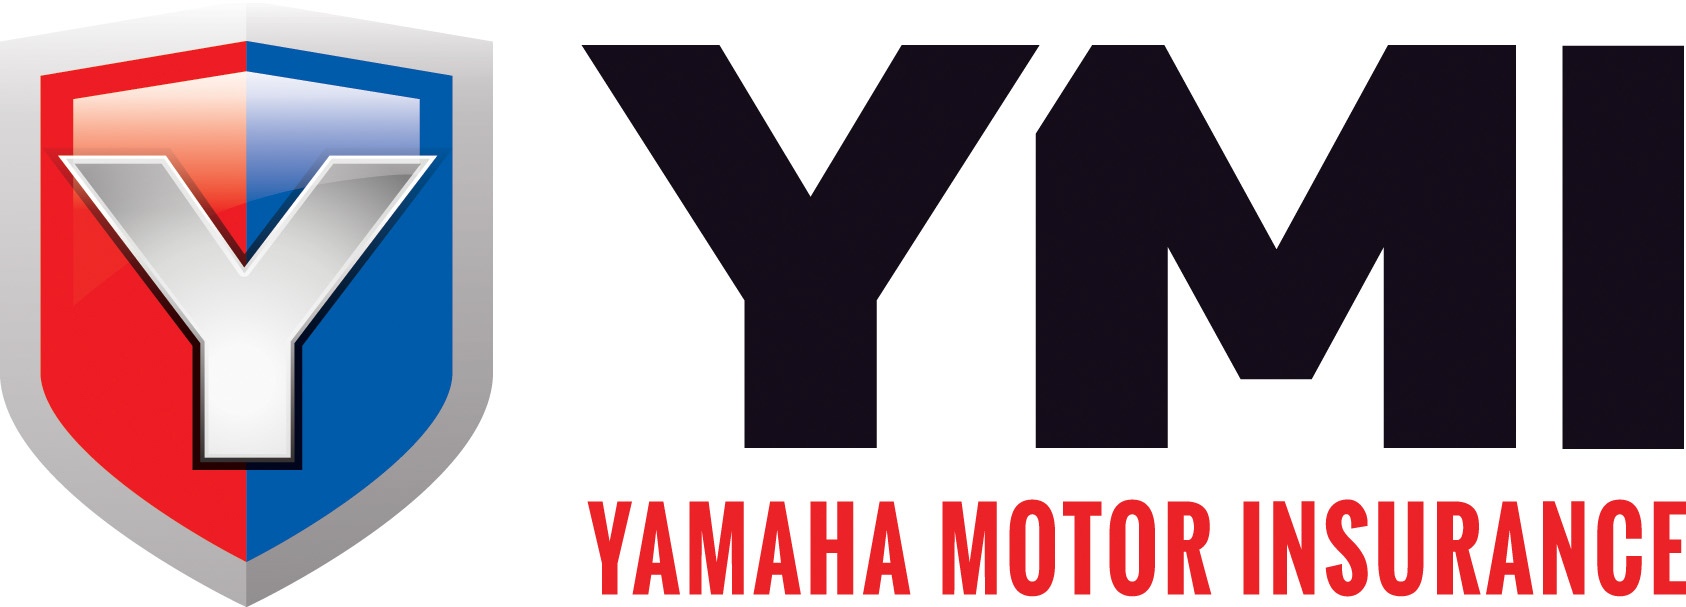 Yamaha Motorcycle and Marine Insurance (YMI) - logo